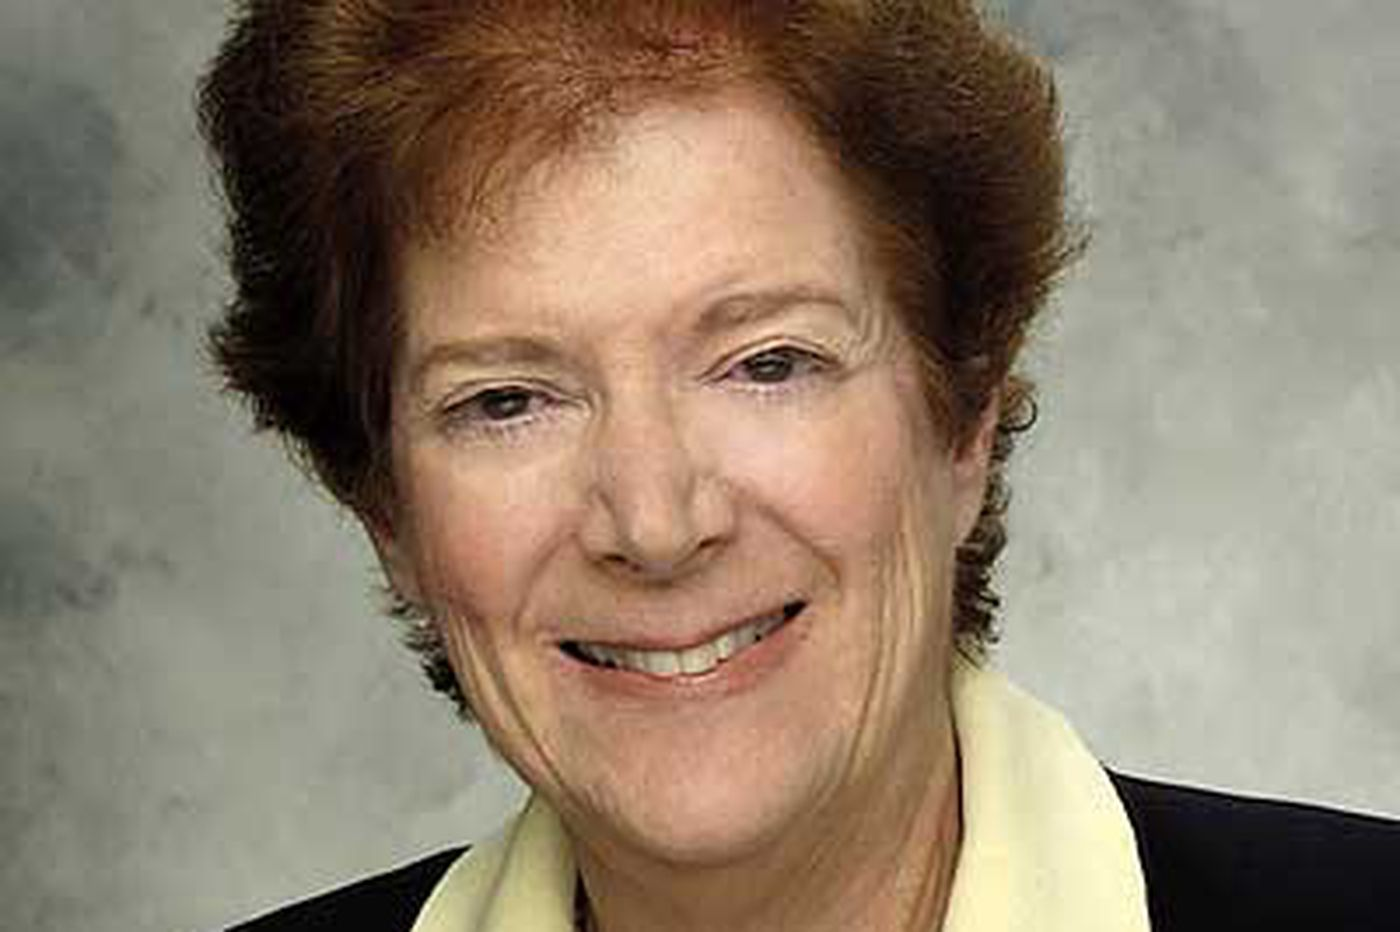 Nessa Forman, 68, ex-editor at Bulletin, WHYY official